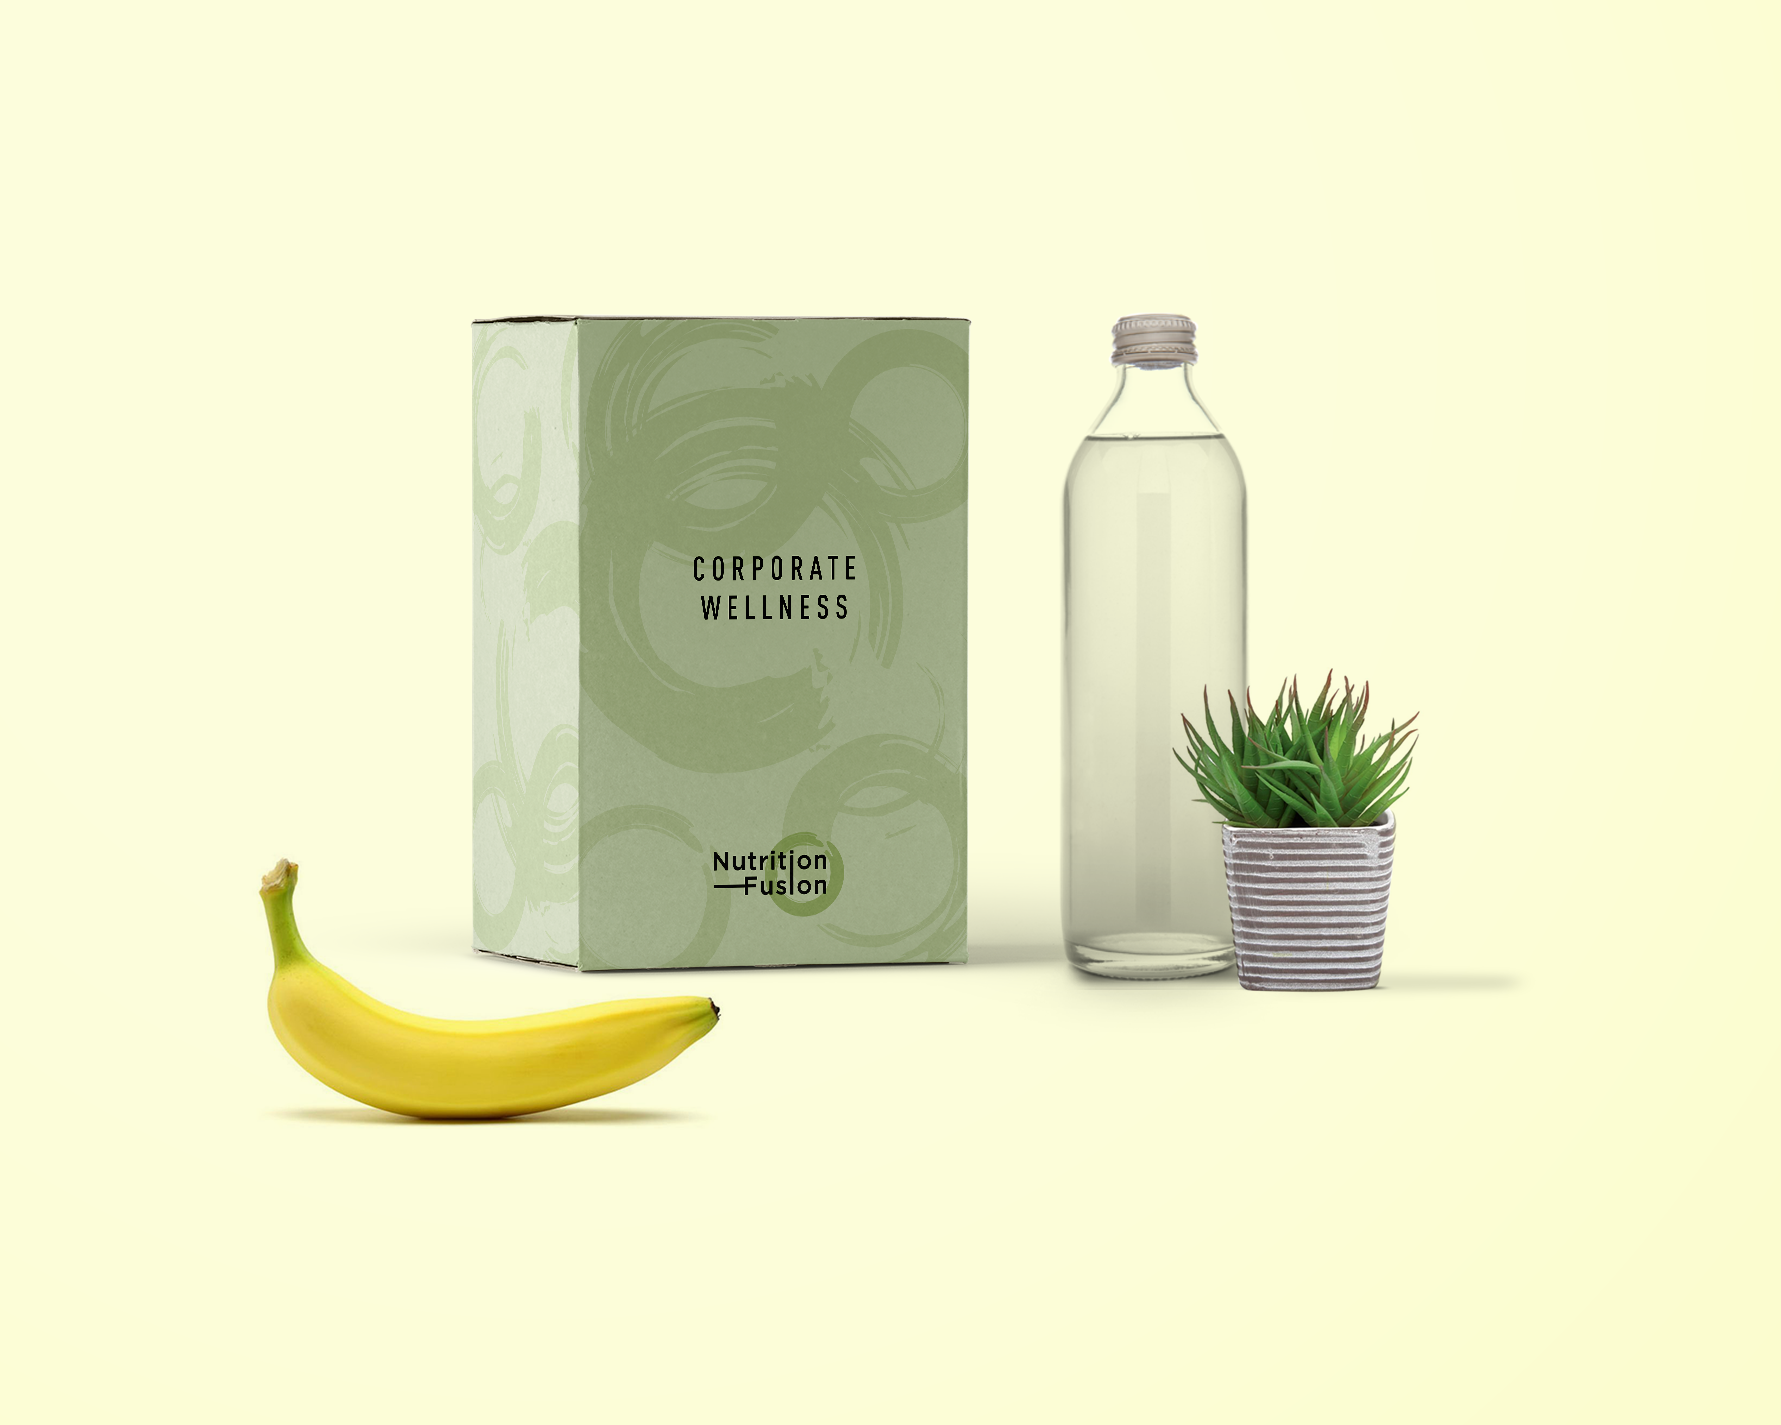 nutrition-fusion-CORPORATE-WELLNESS.png